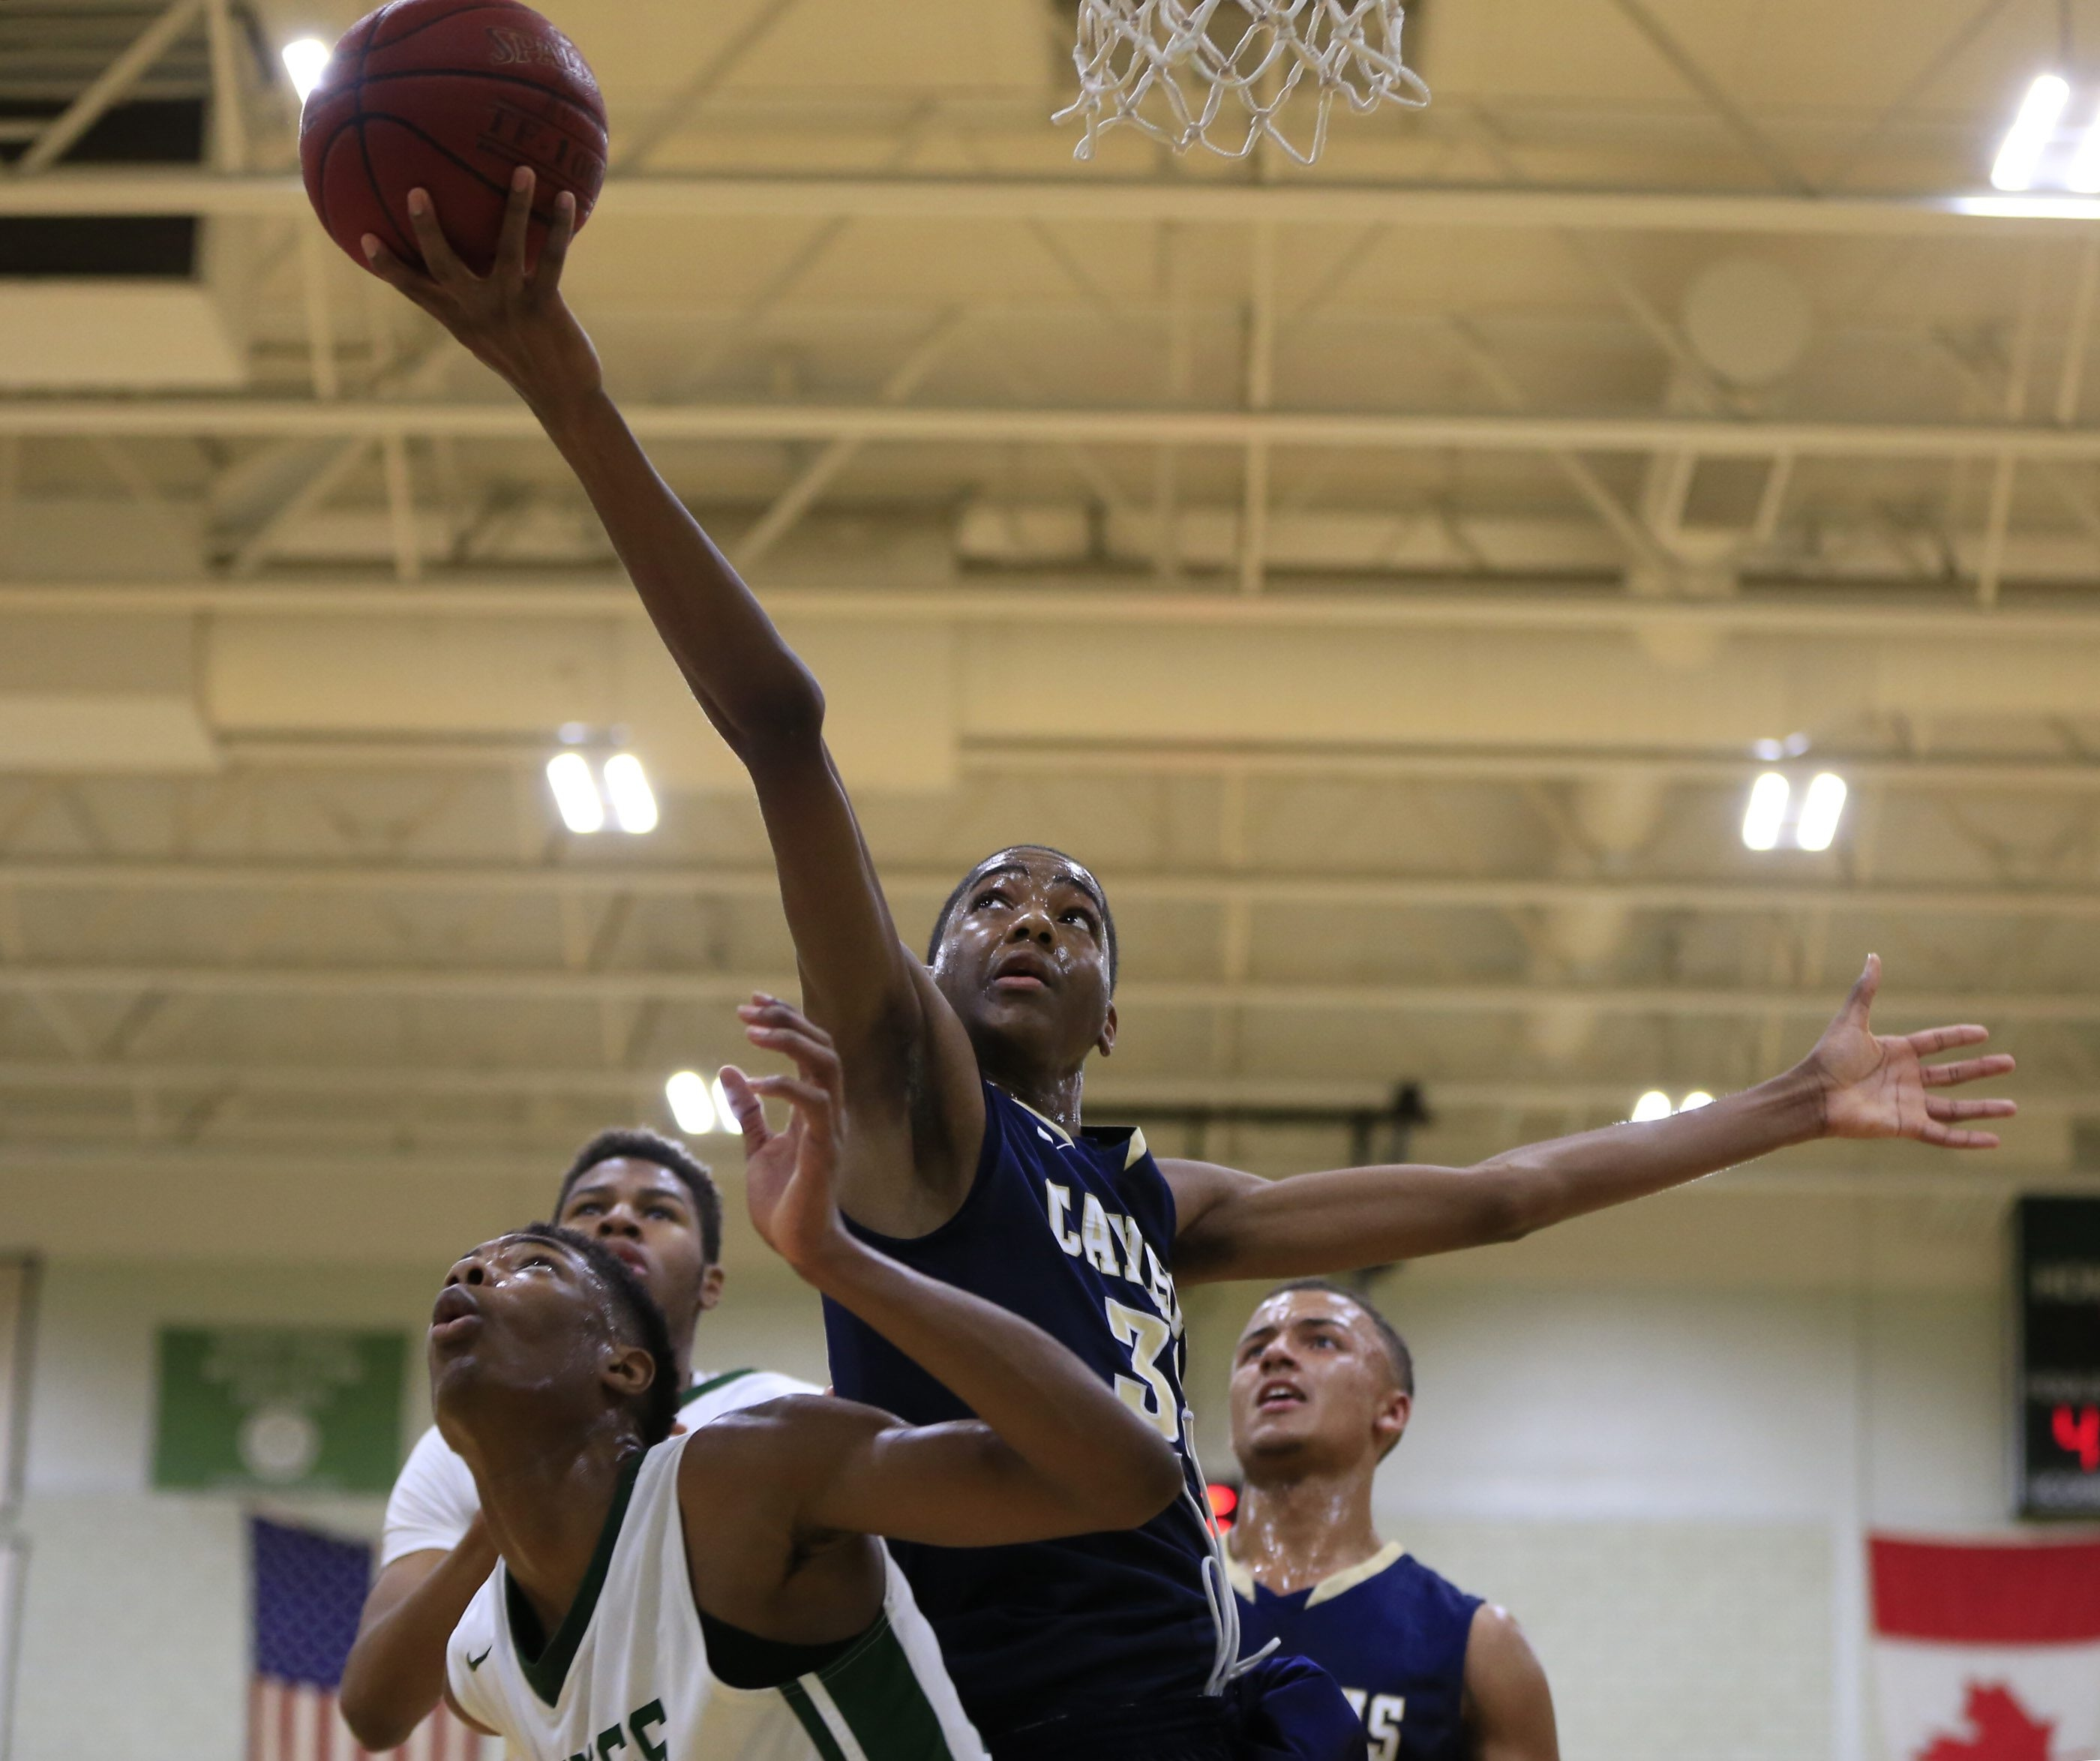 Charles Hart scored 10 points and four Canisius players were in double figures in the Crusaders' win over Nichols.